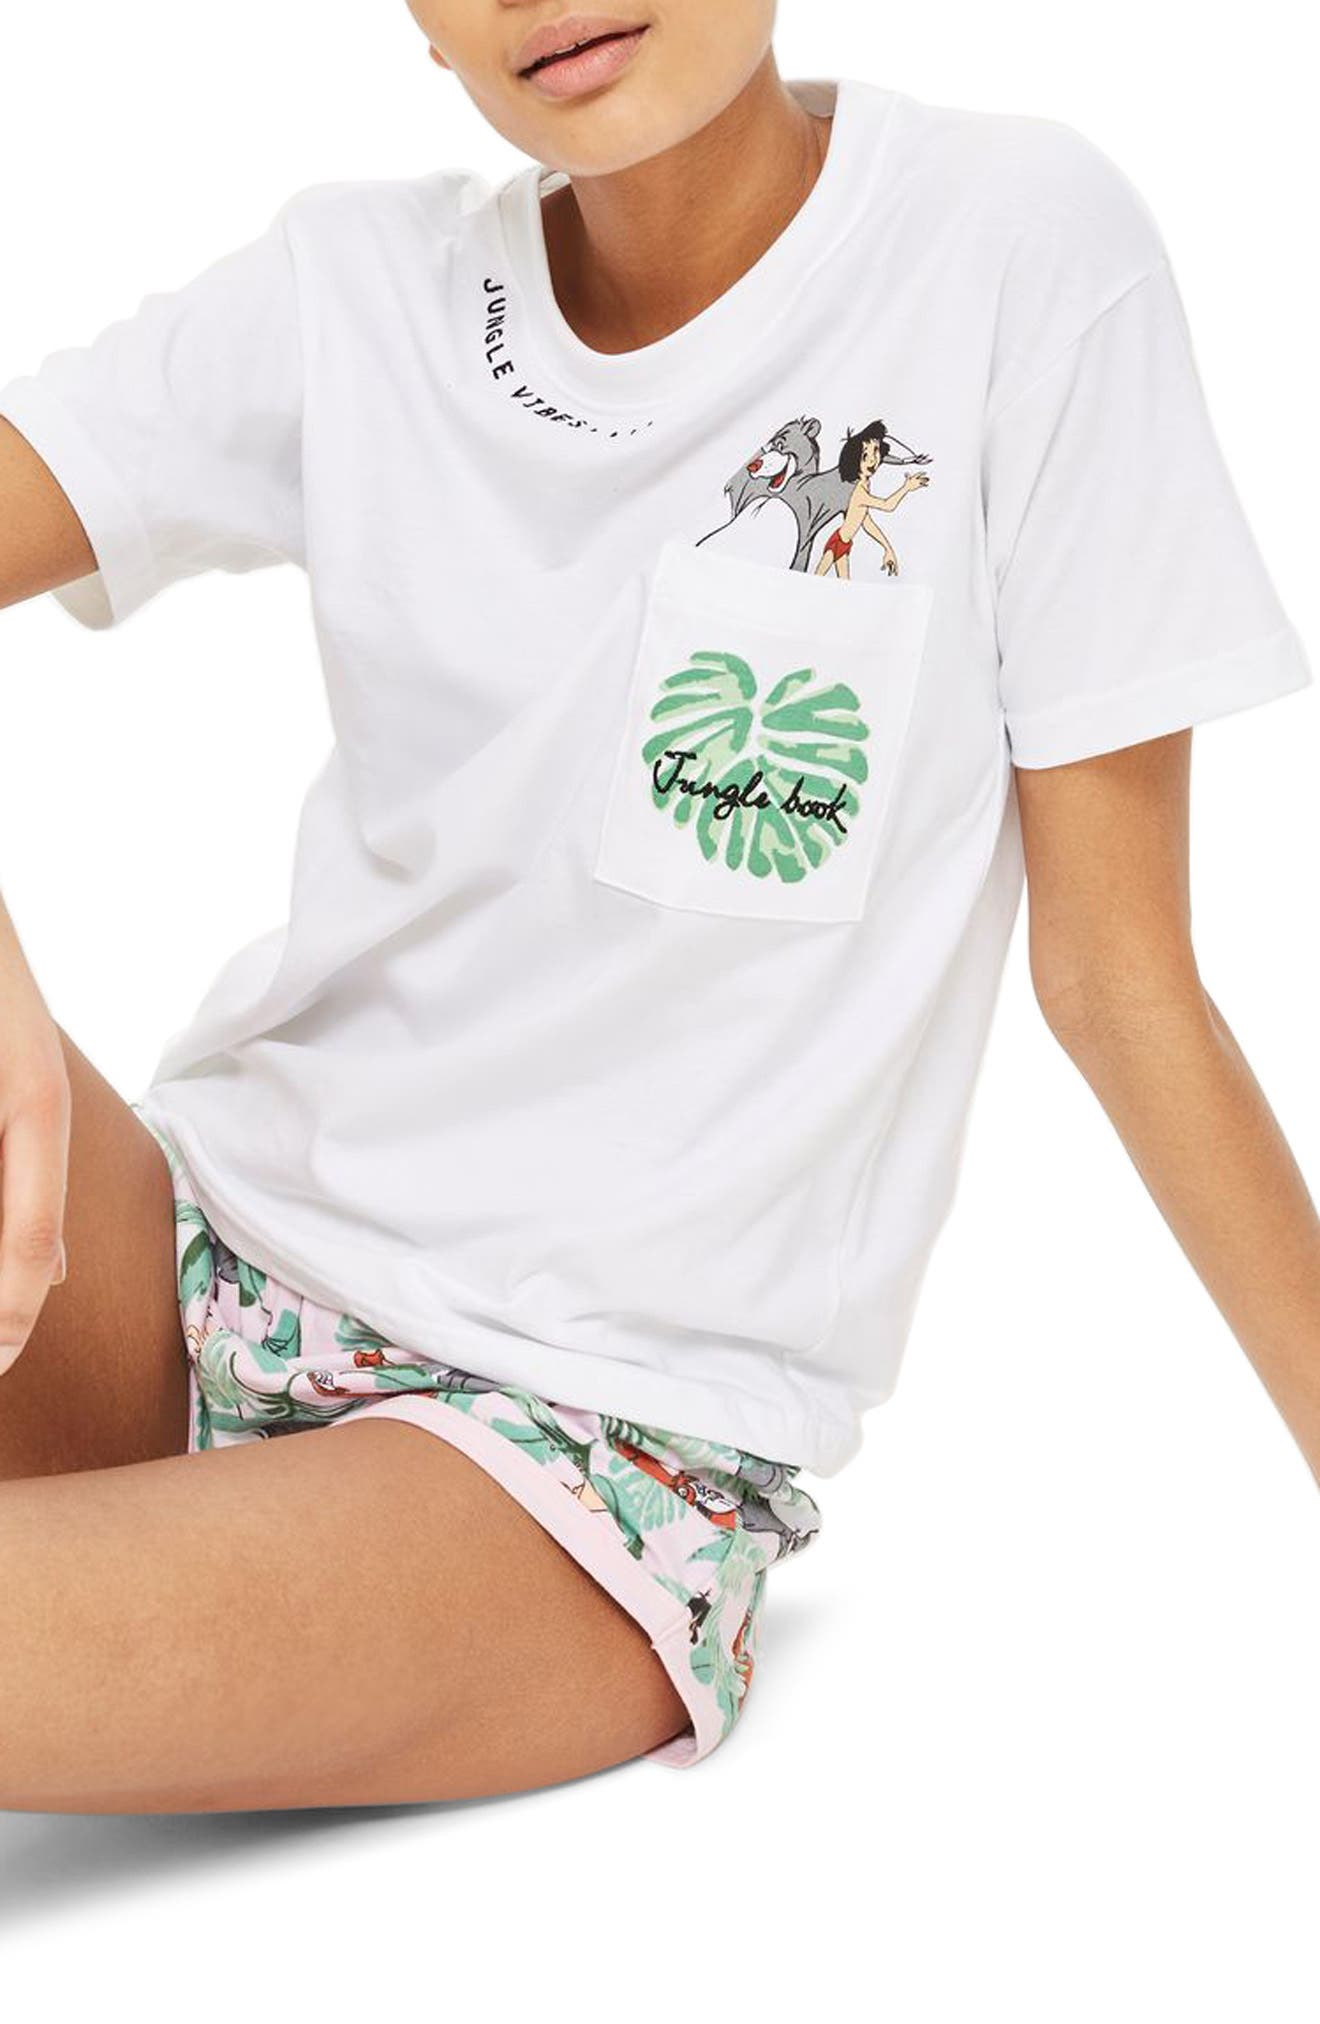 Disney<sup>®</sup> Jungle Book Short Pajamas,                             Main thumbnail 1, color,                             White Multi